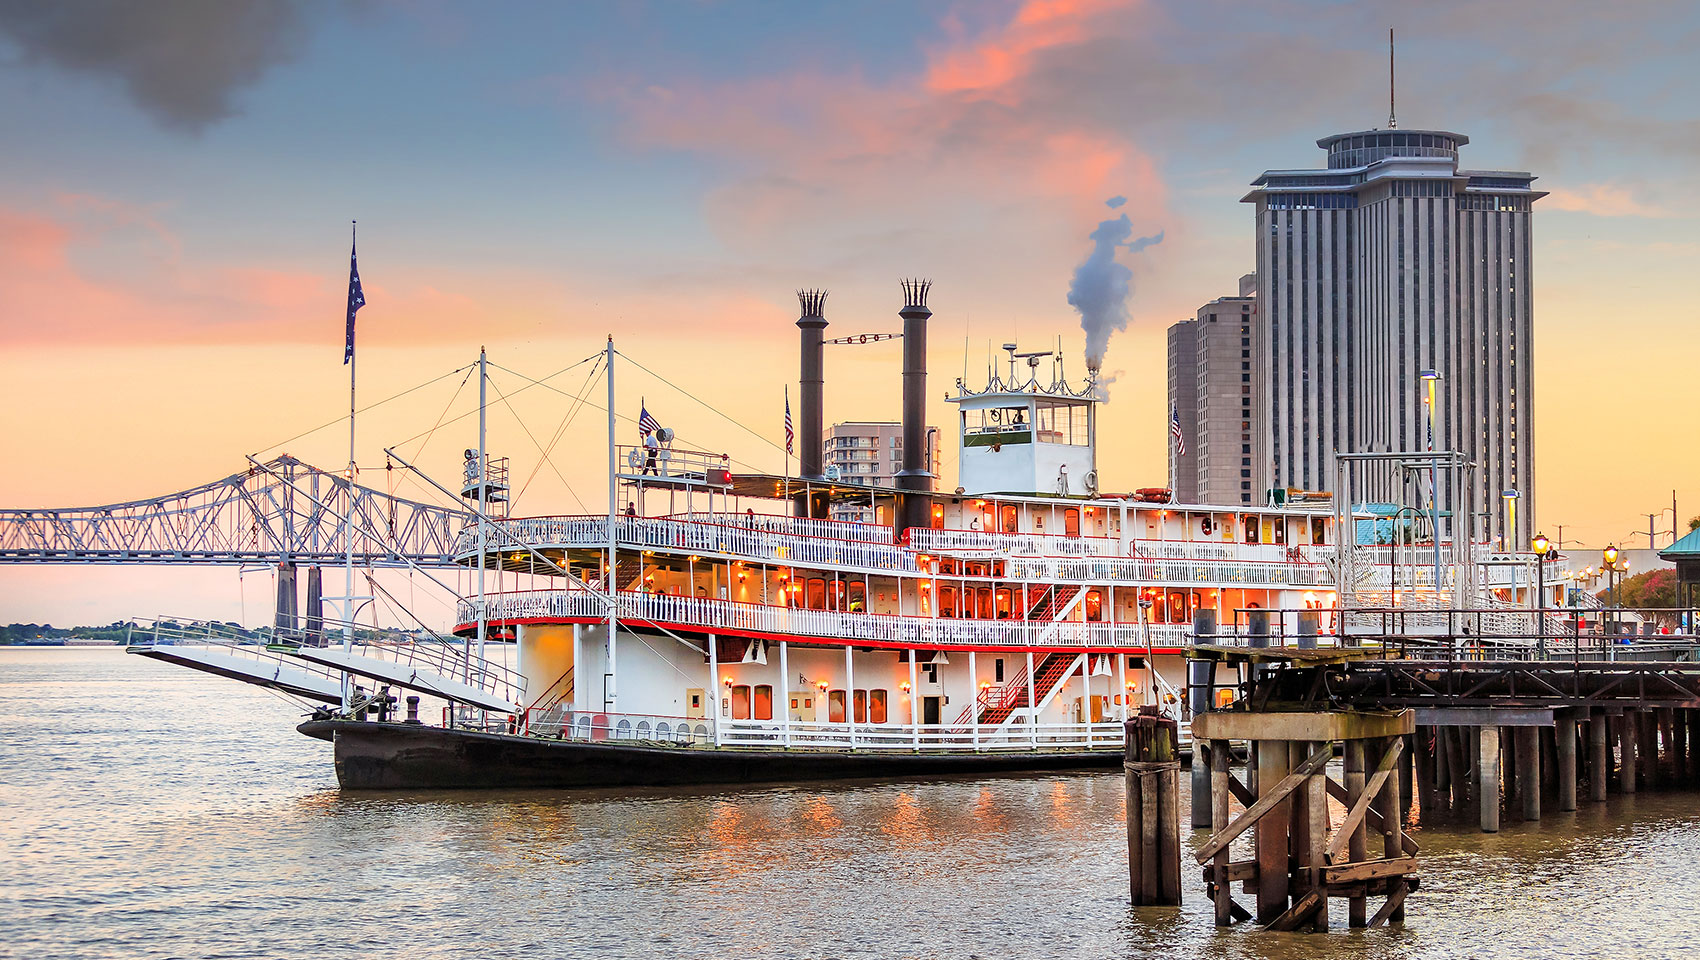 Steamboat at Port of New Orleans